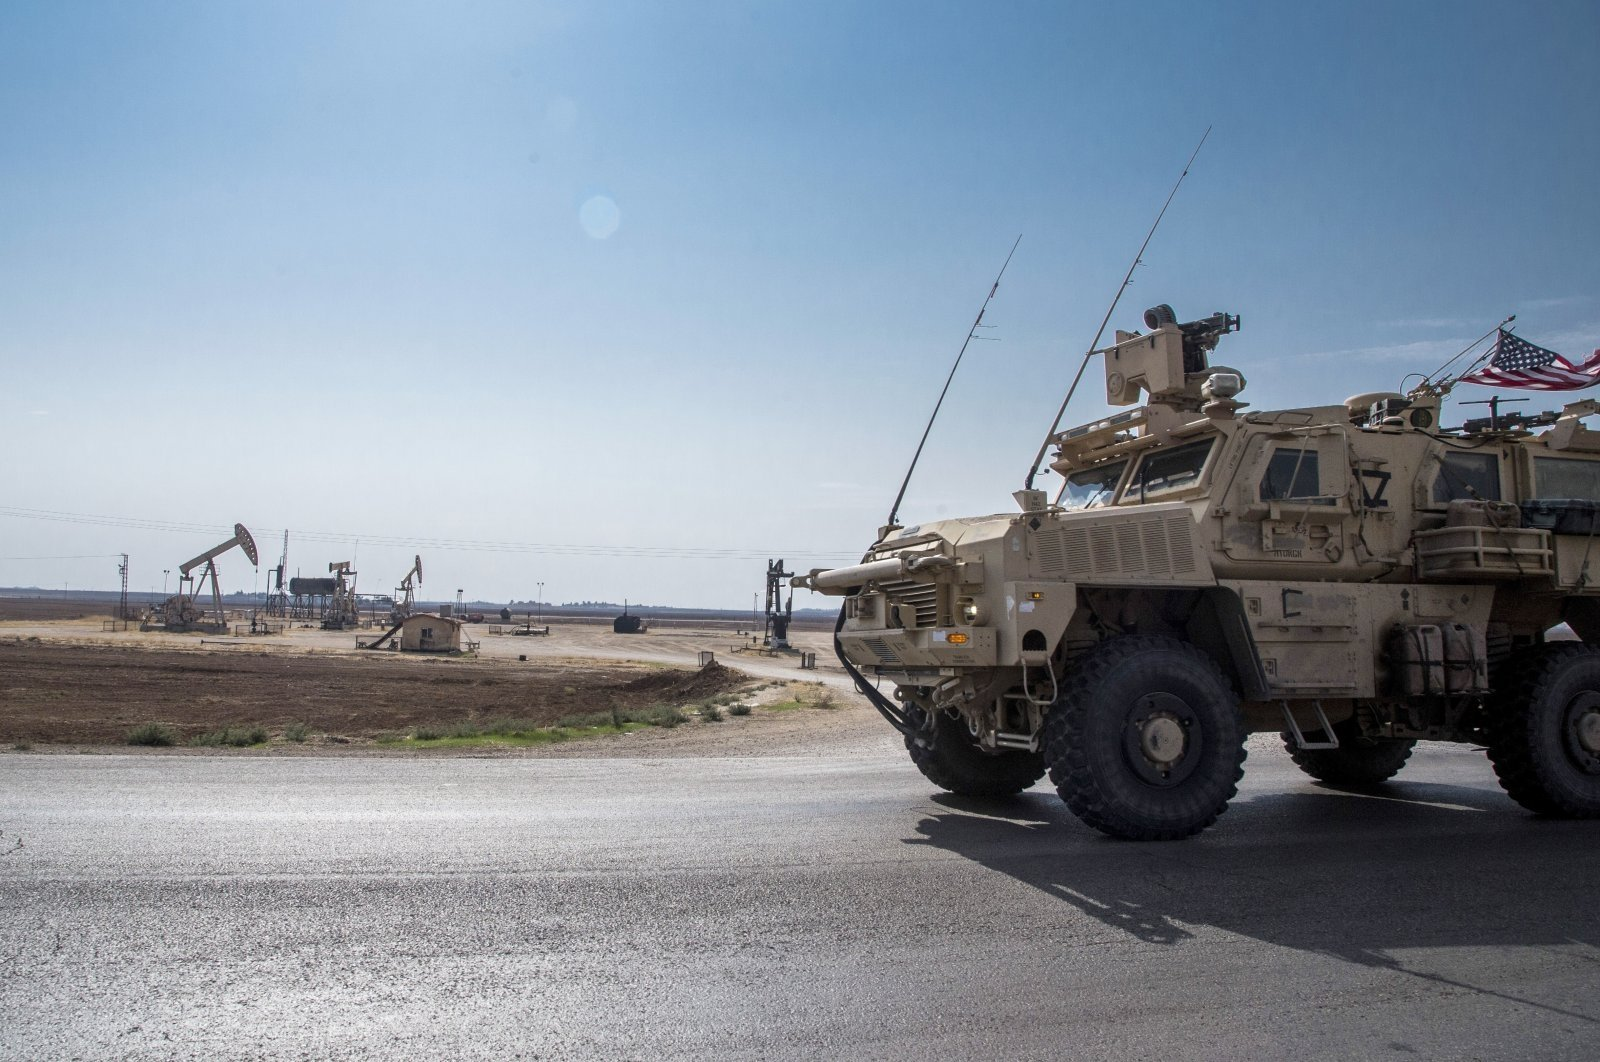 U.S. forces patrol the YPG terrorist group-controlled oil fields in northeast Syria, Oct. 28, 2019, (AP Photo)